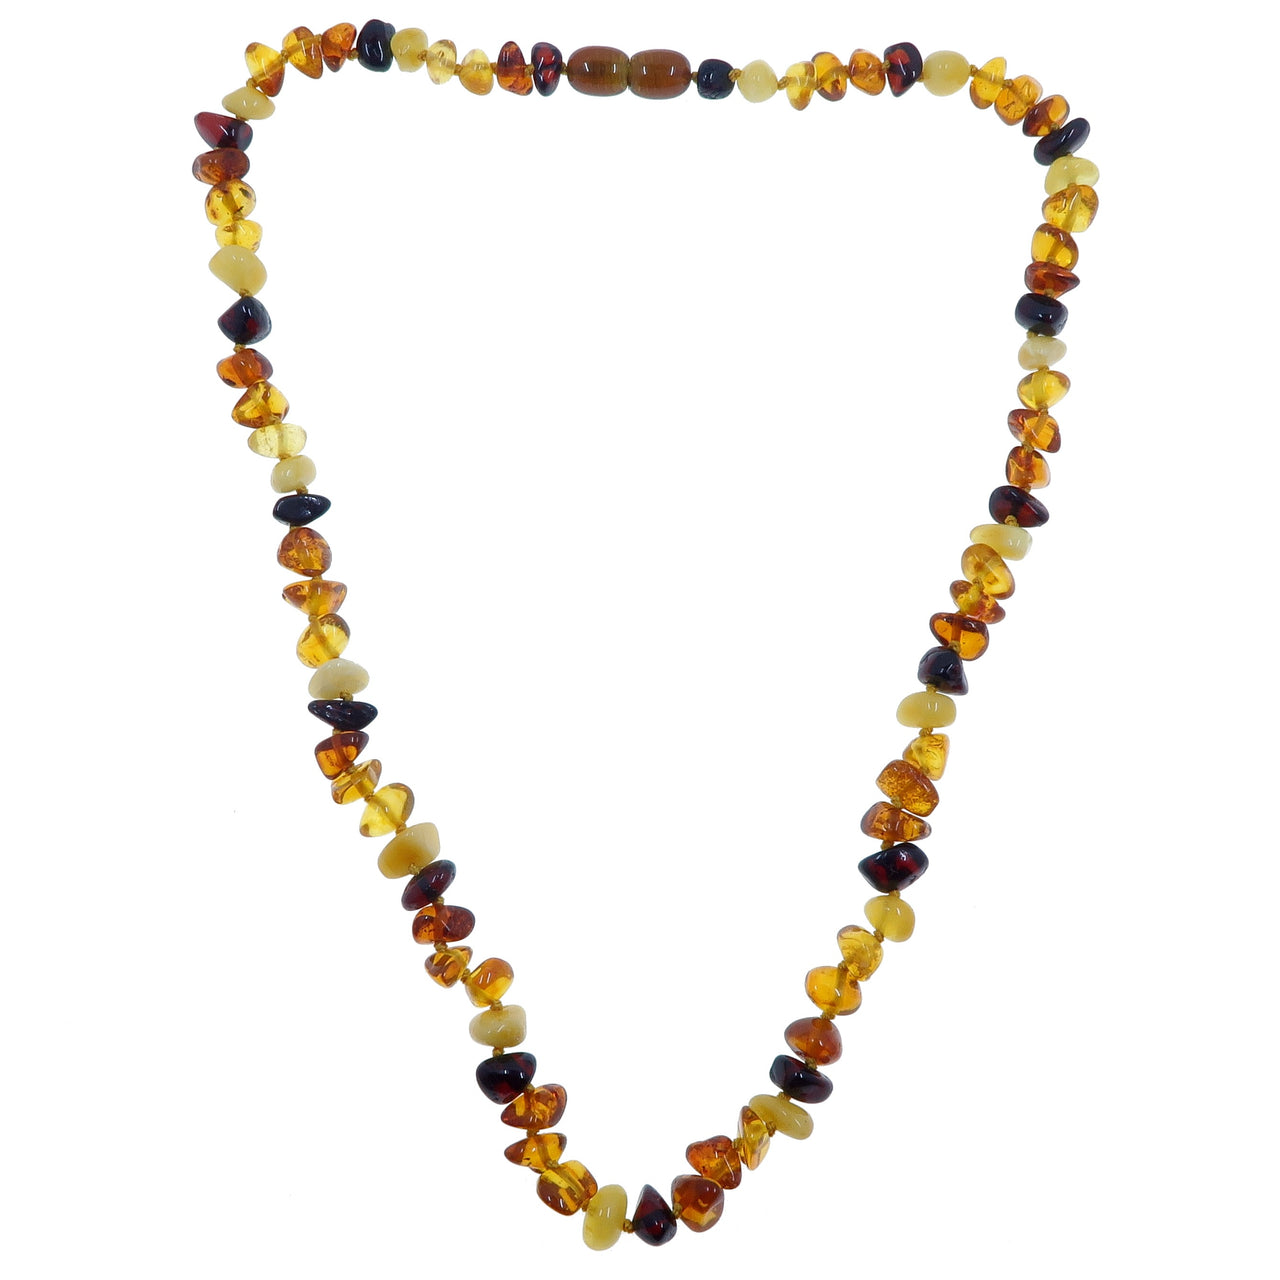 "Amber Necklace 19"" Boutique Multi-Colored Yellow Orange Red Baltic Gemstone Knotted B10"